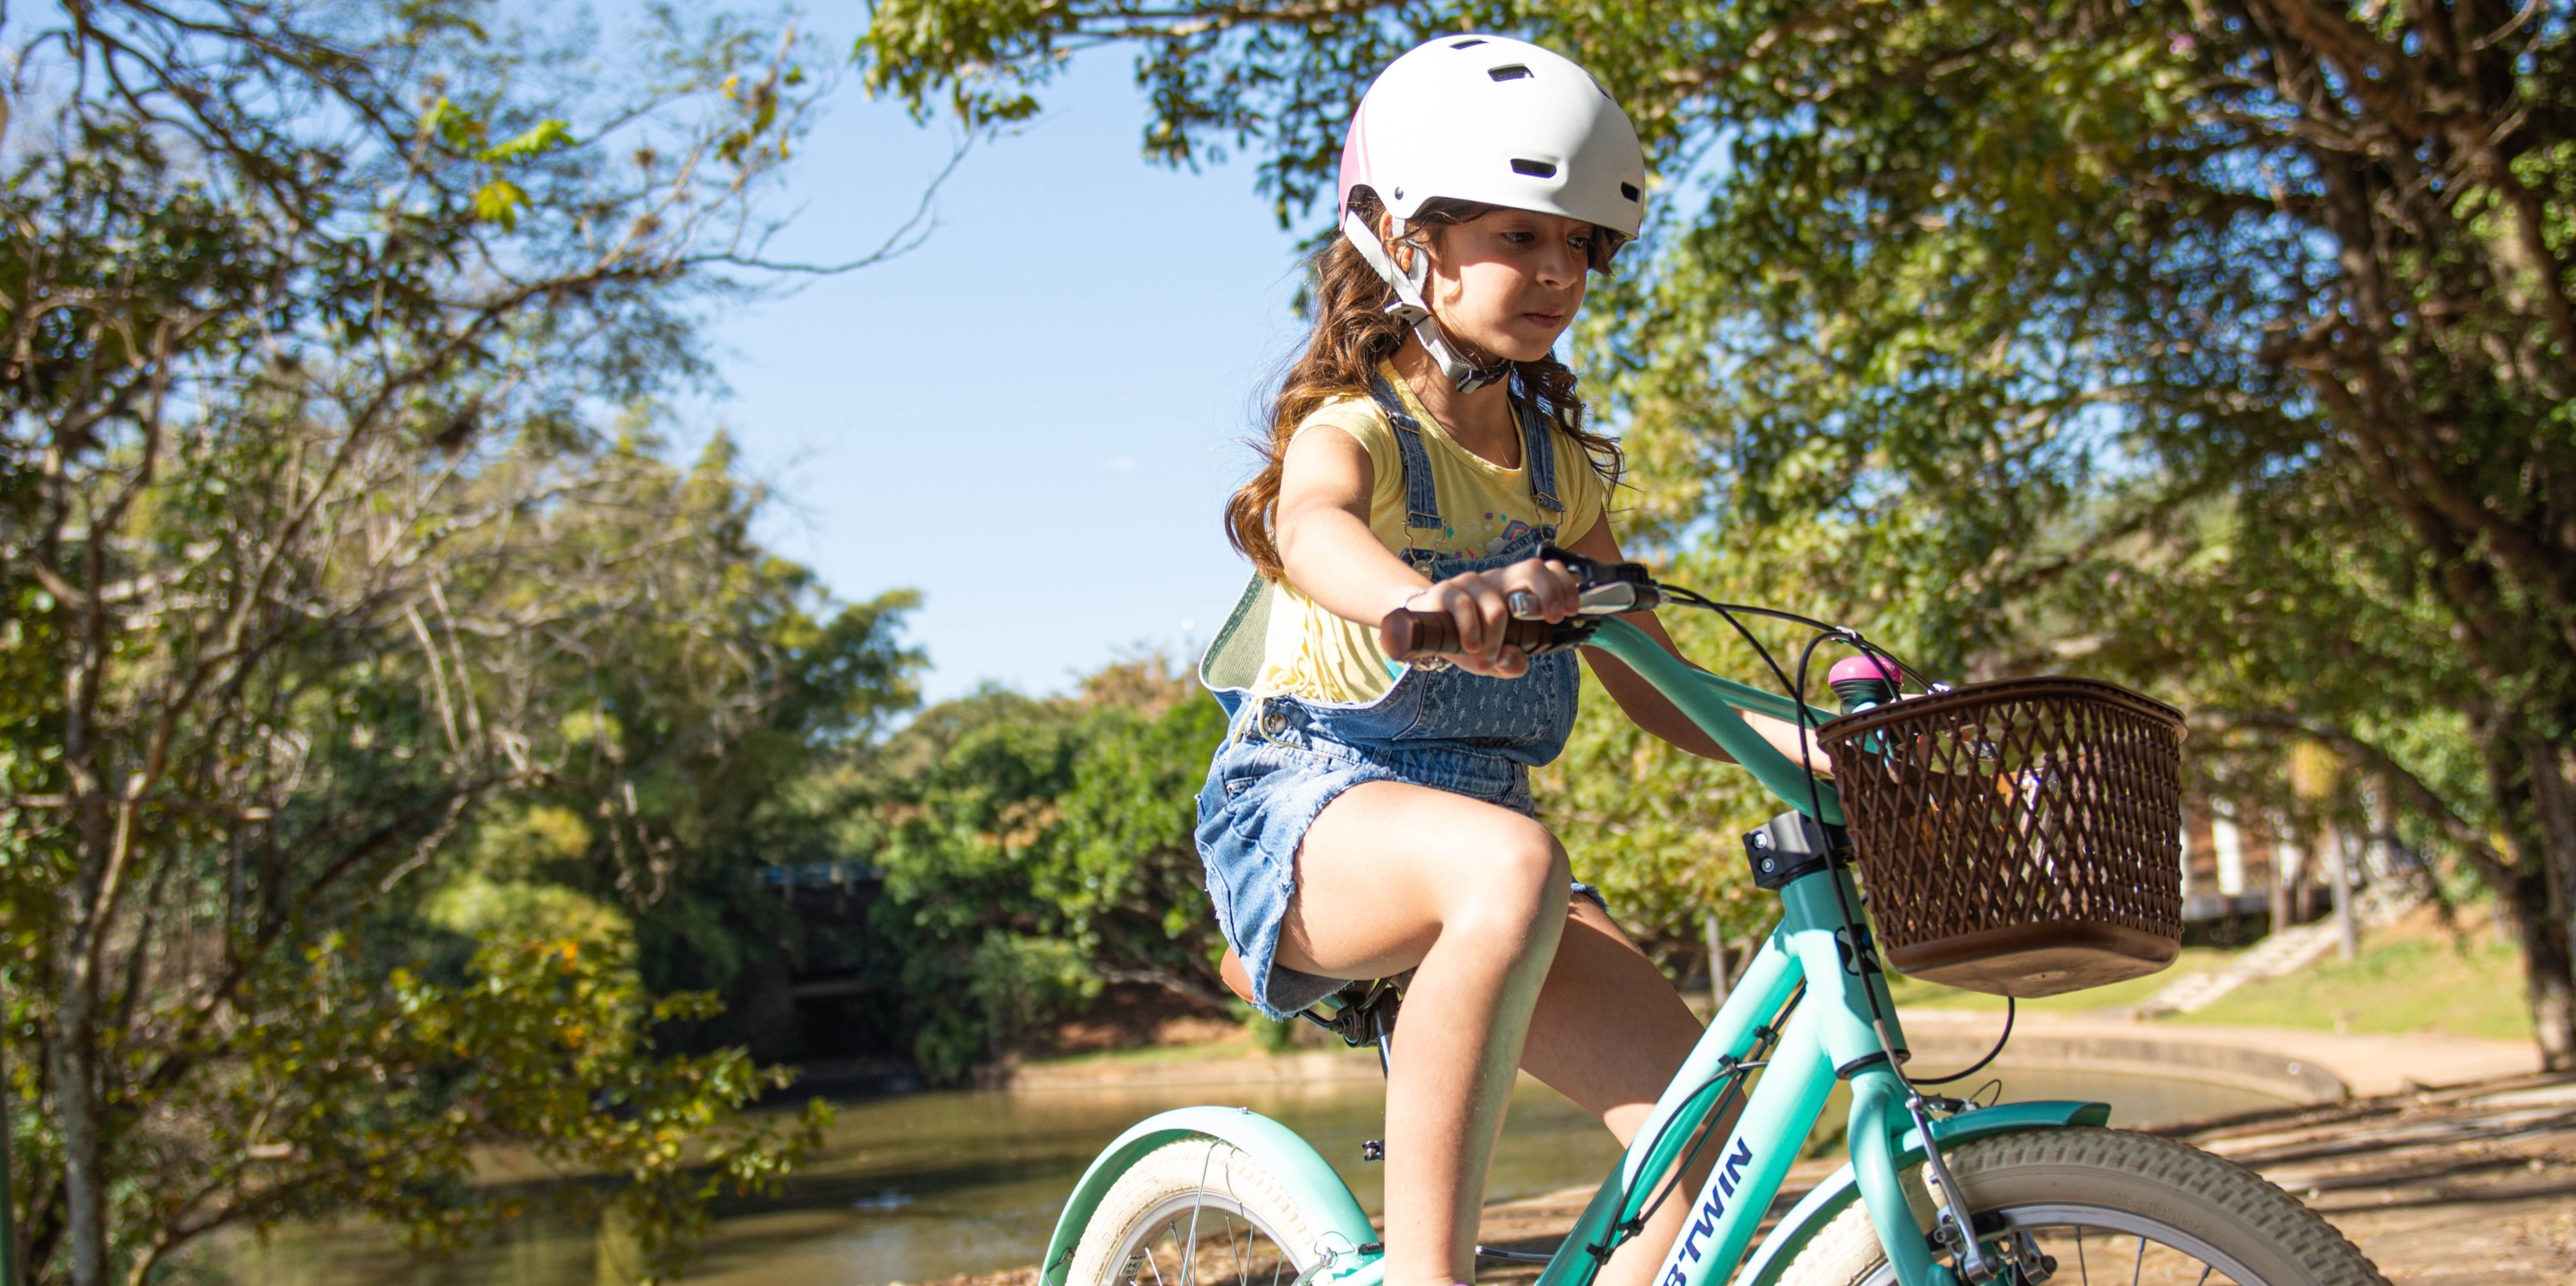 How Can We Stay Safe While Family Leisure Cycling?